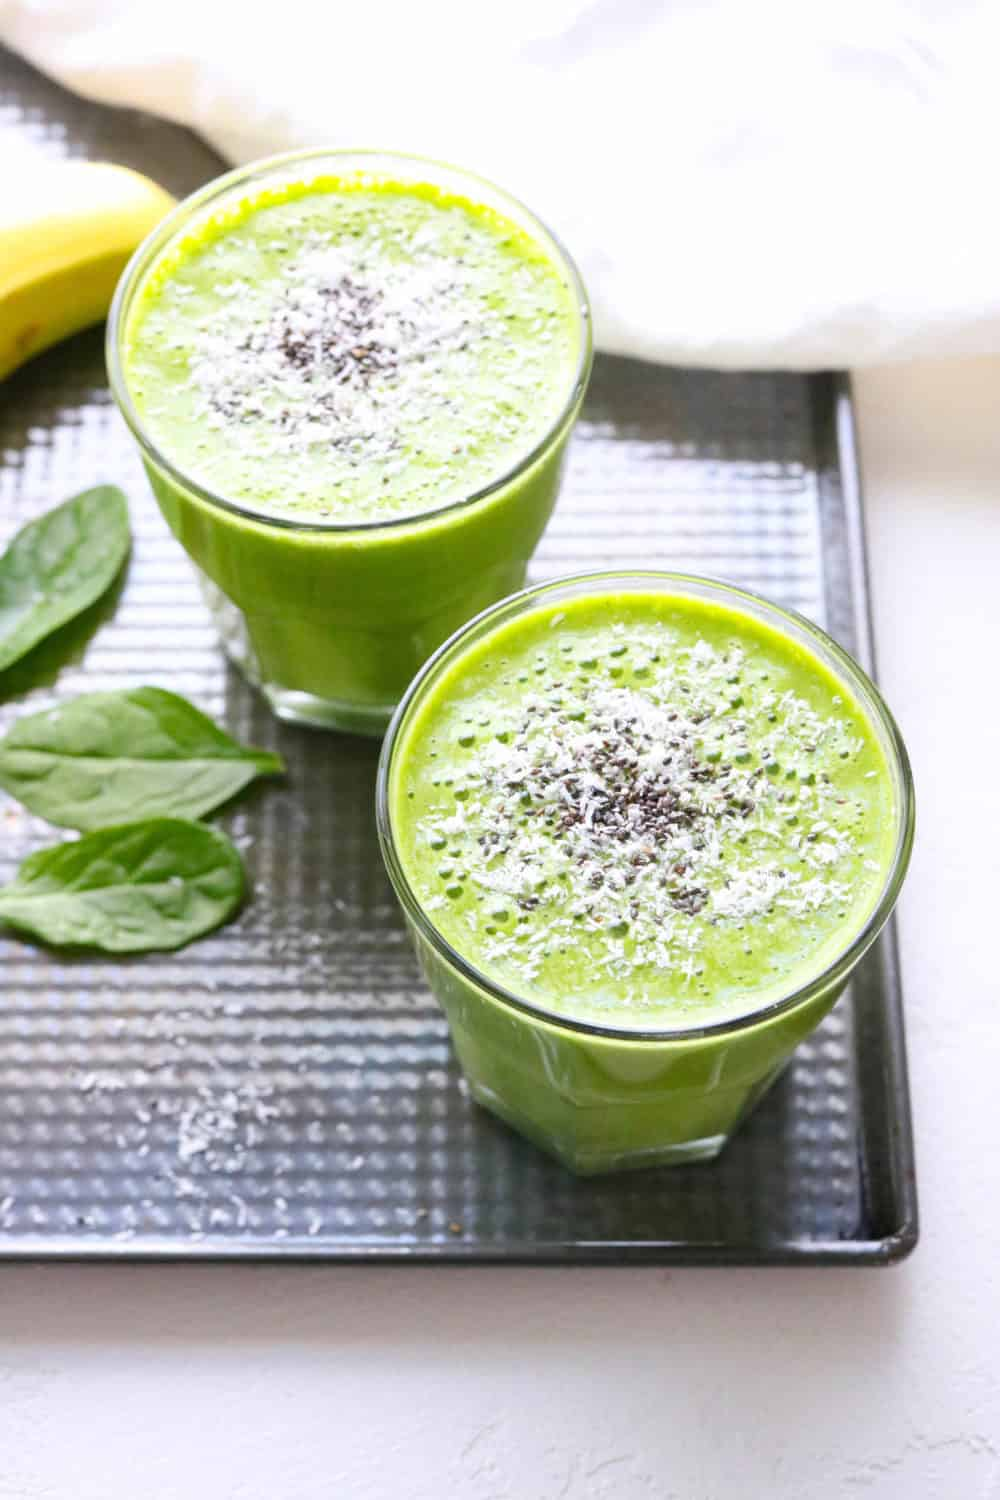 Green smoothie in two glasses on a metal tray with a banana next to it